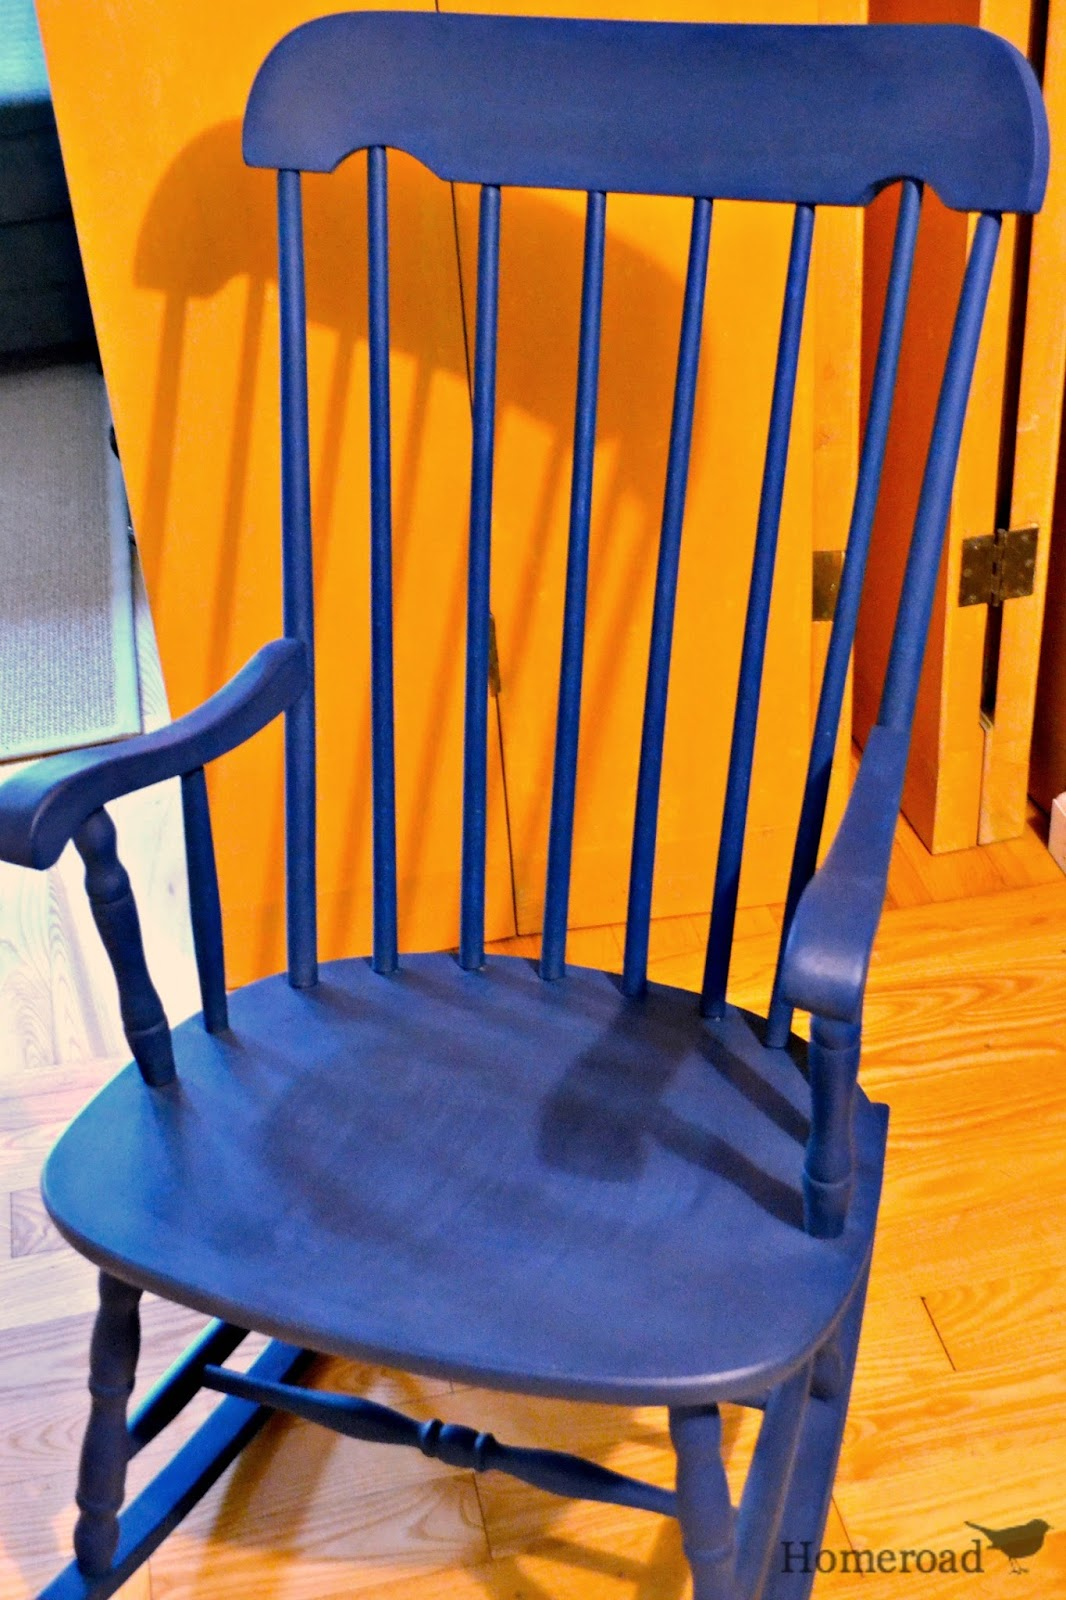 Shabby chic painted rocking chairs - The Next Thing This Little Beauty Needed Was A Chair Cushion